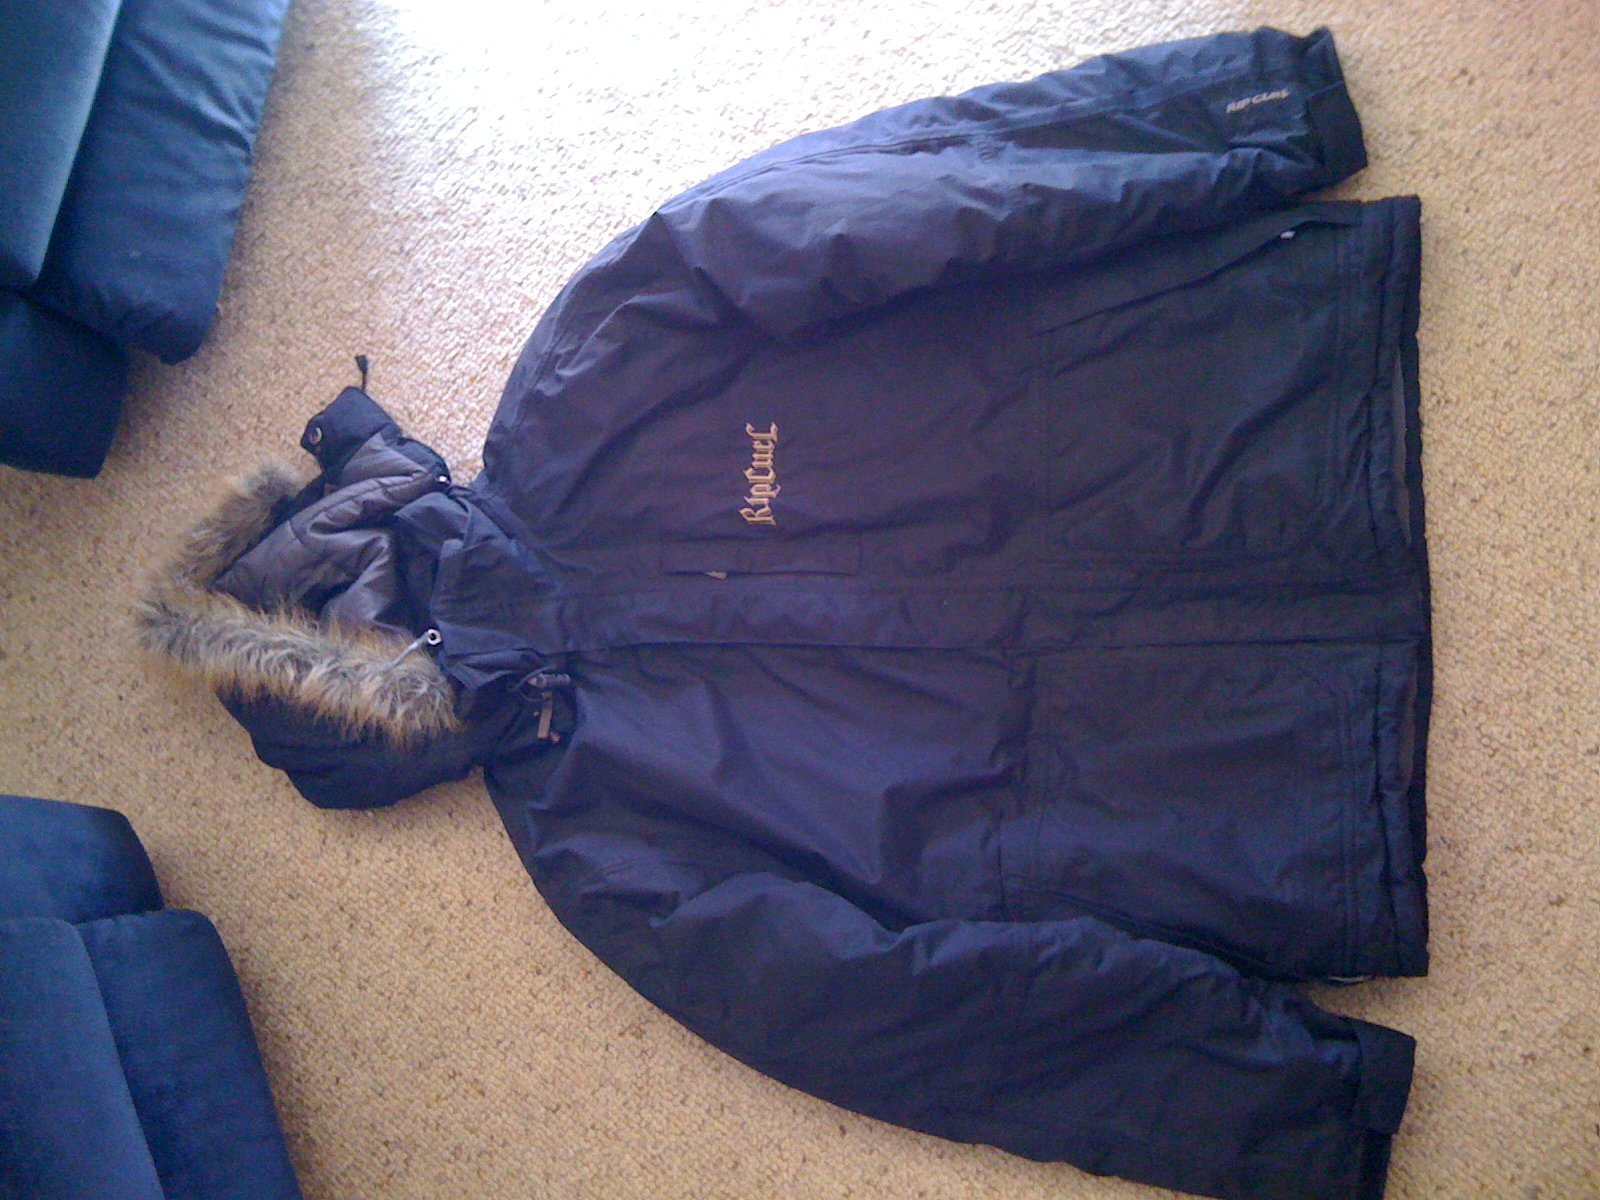 RIPCURL JACKET FOR SALE